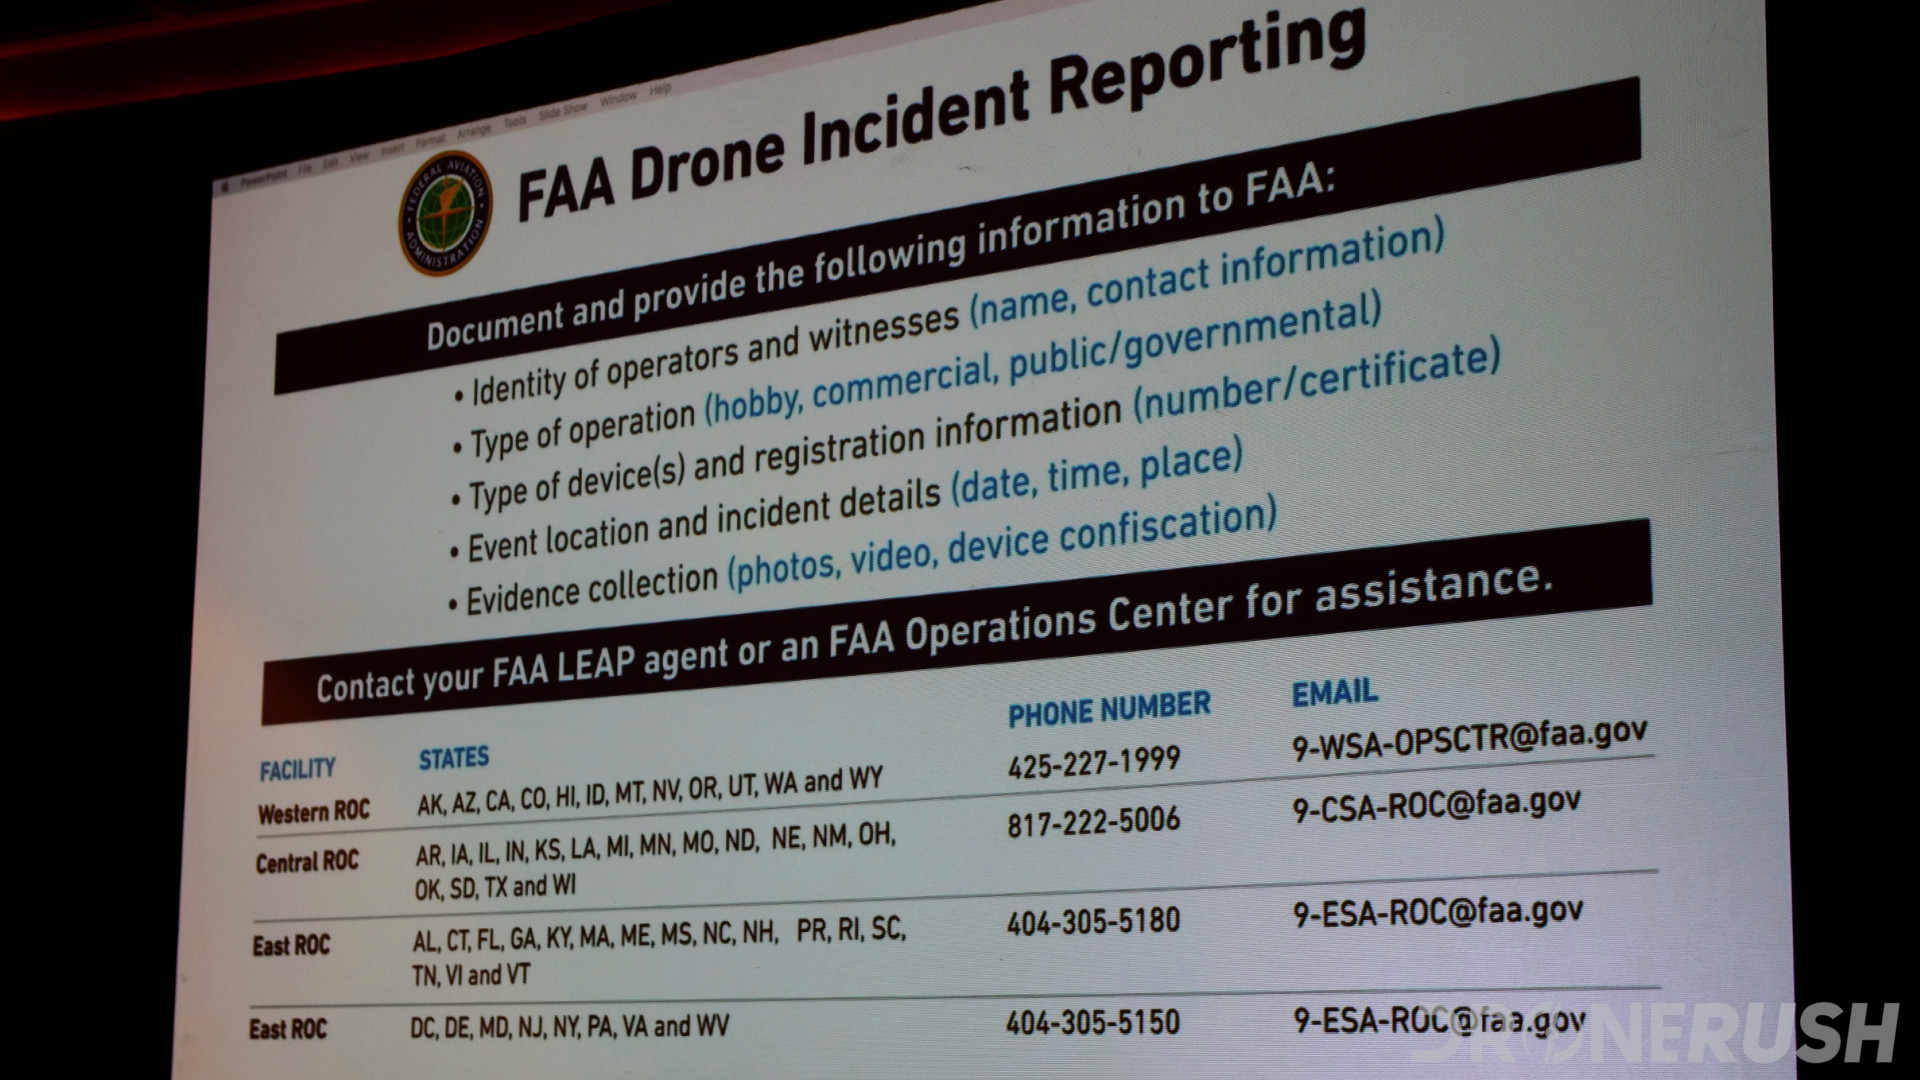 Interdrone 2019 FAA drone incident reporting